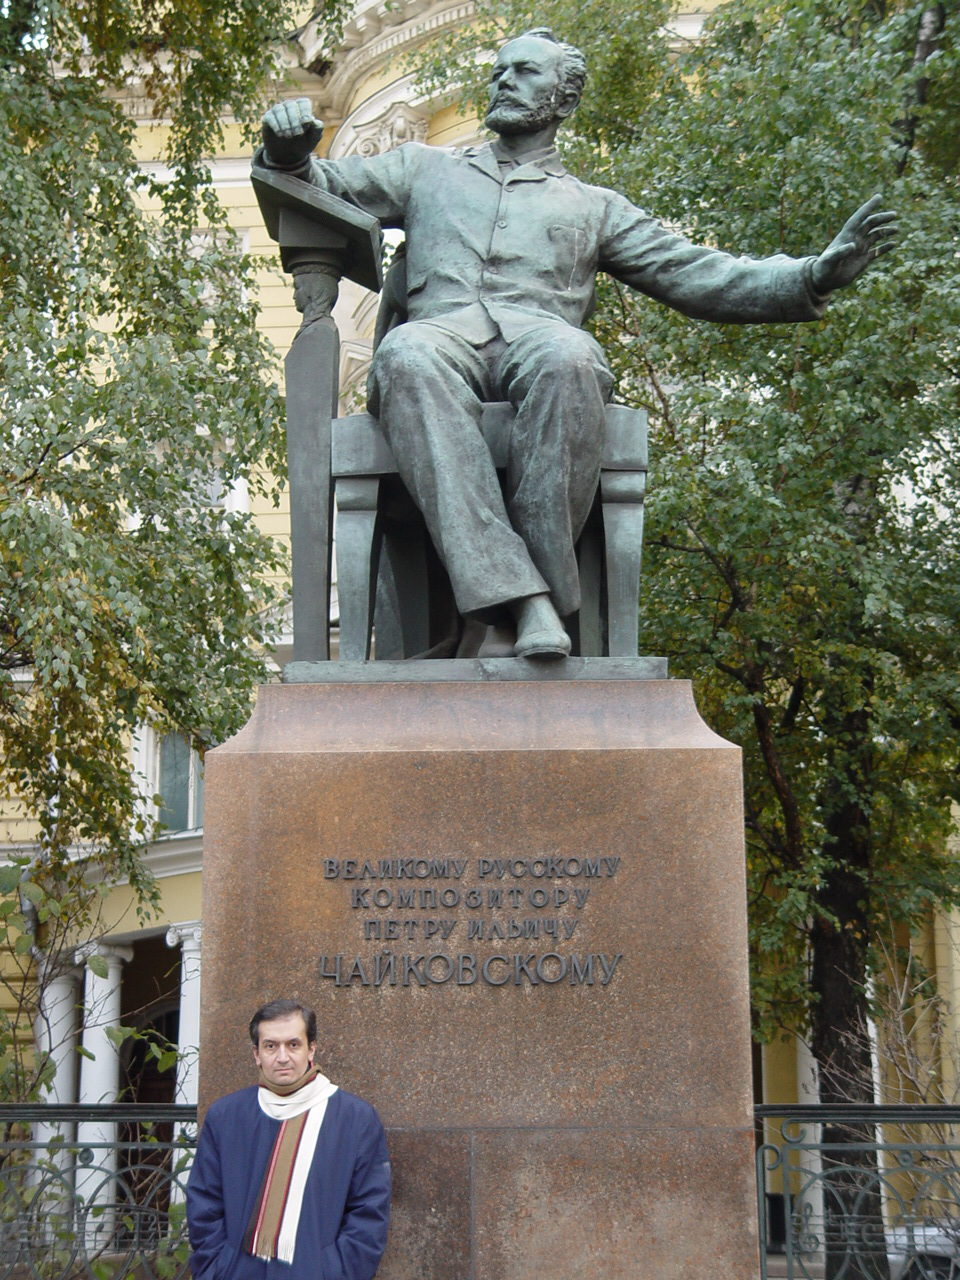 with the statue of Tchaikovsky